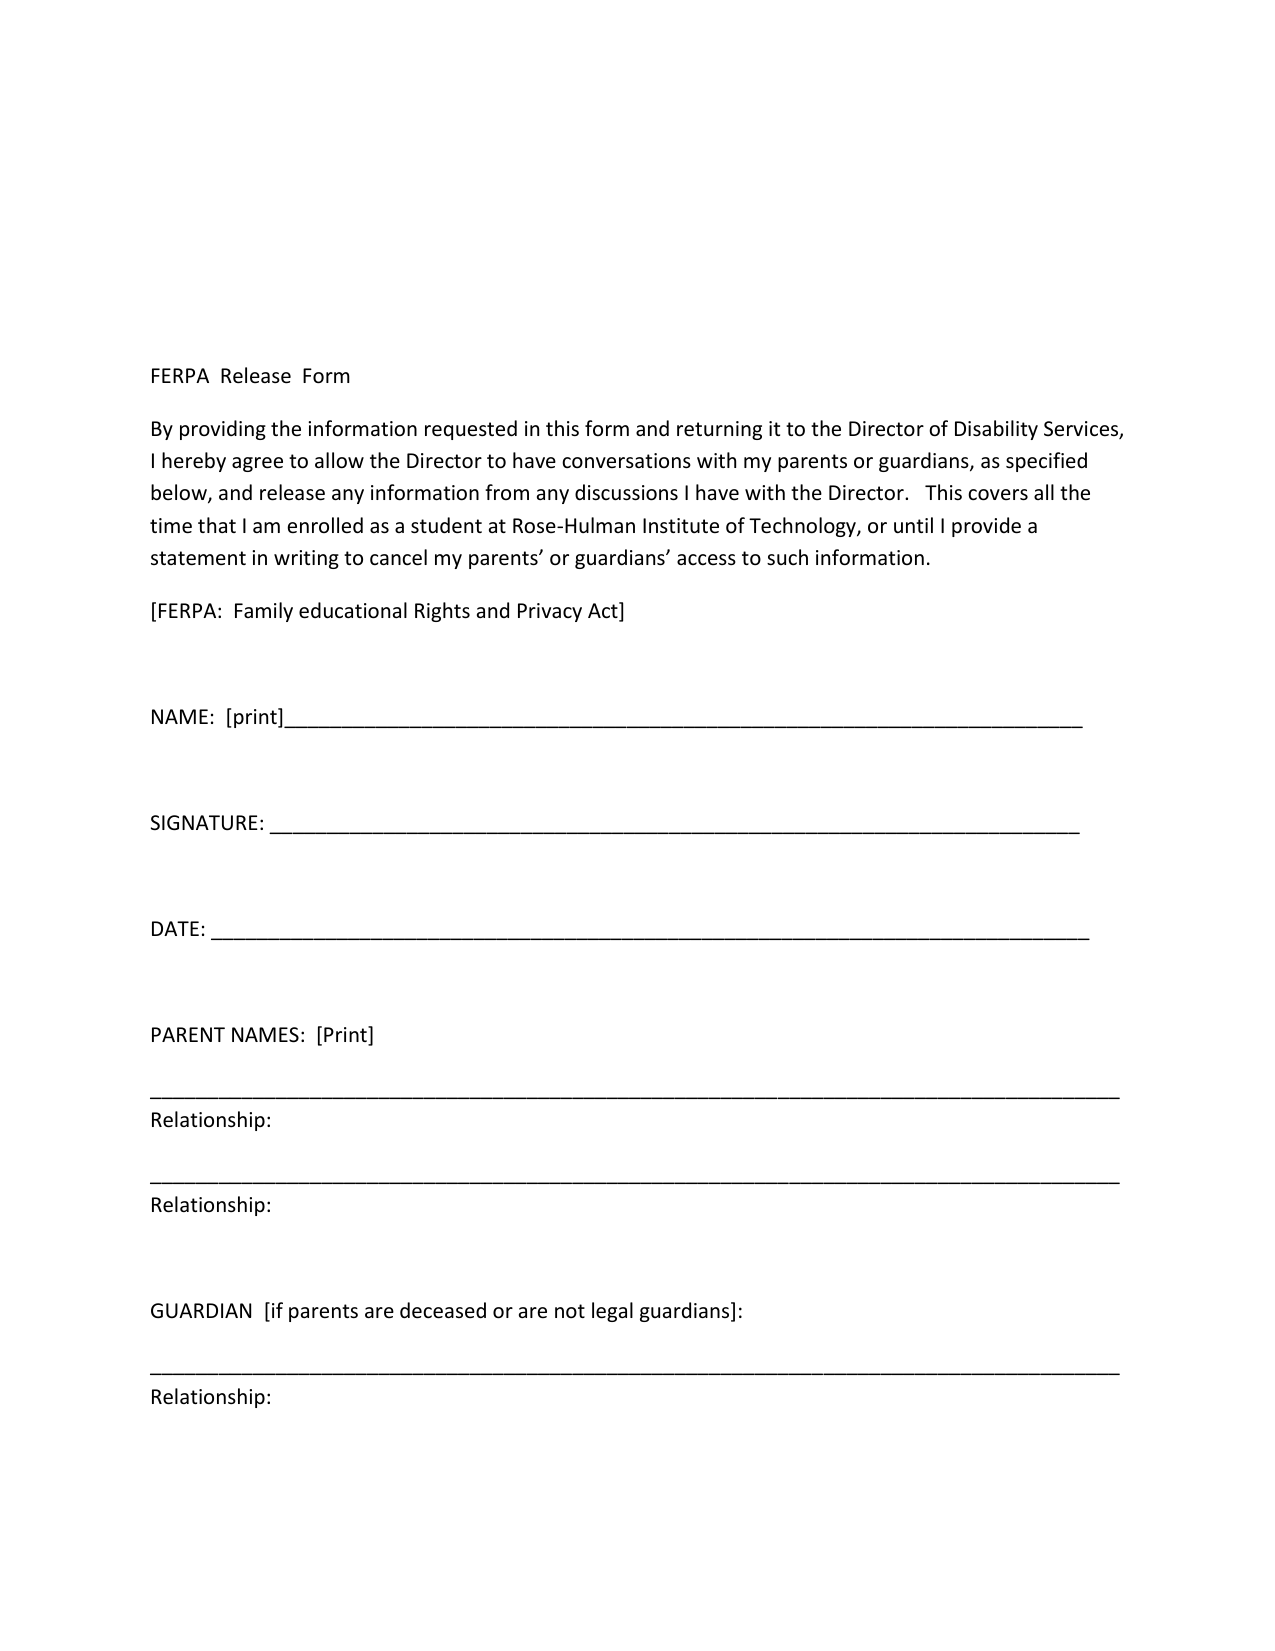 ferpa form for parents  FERPA Release Form